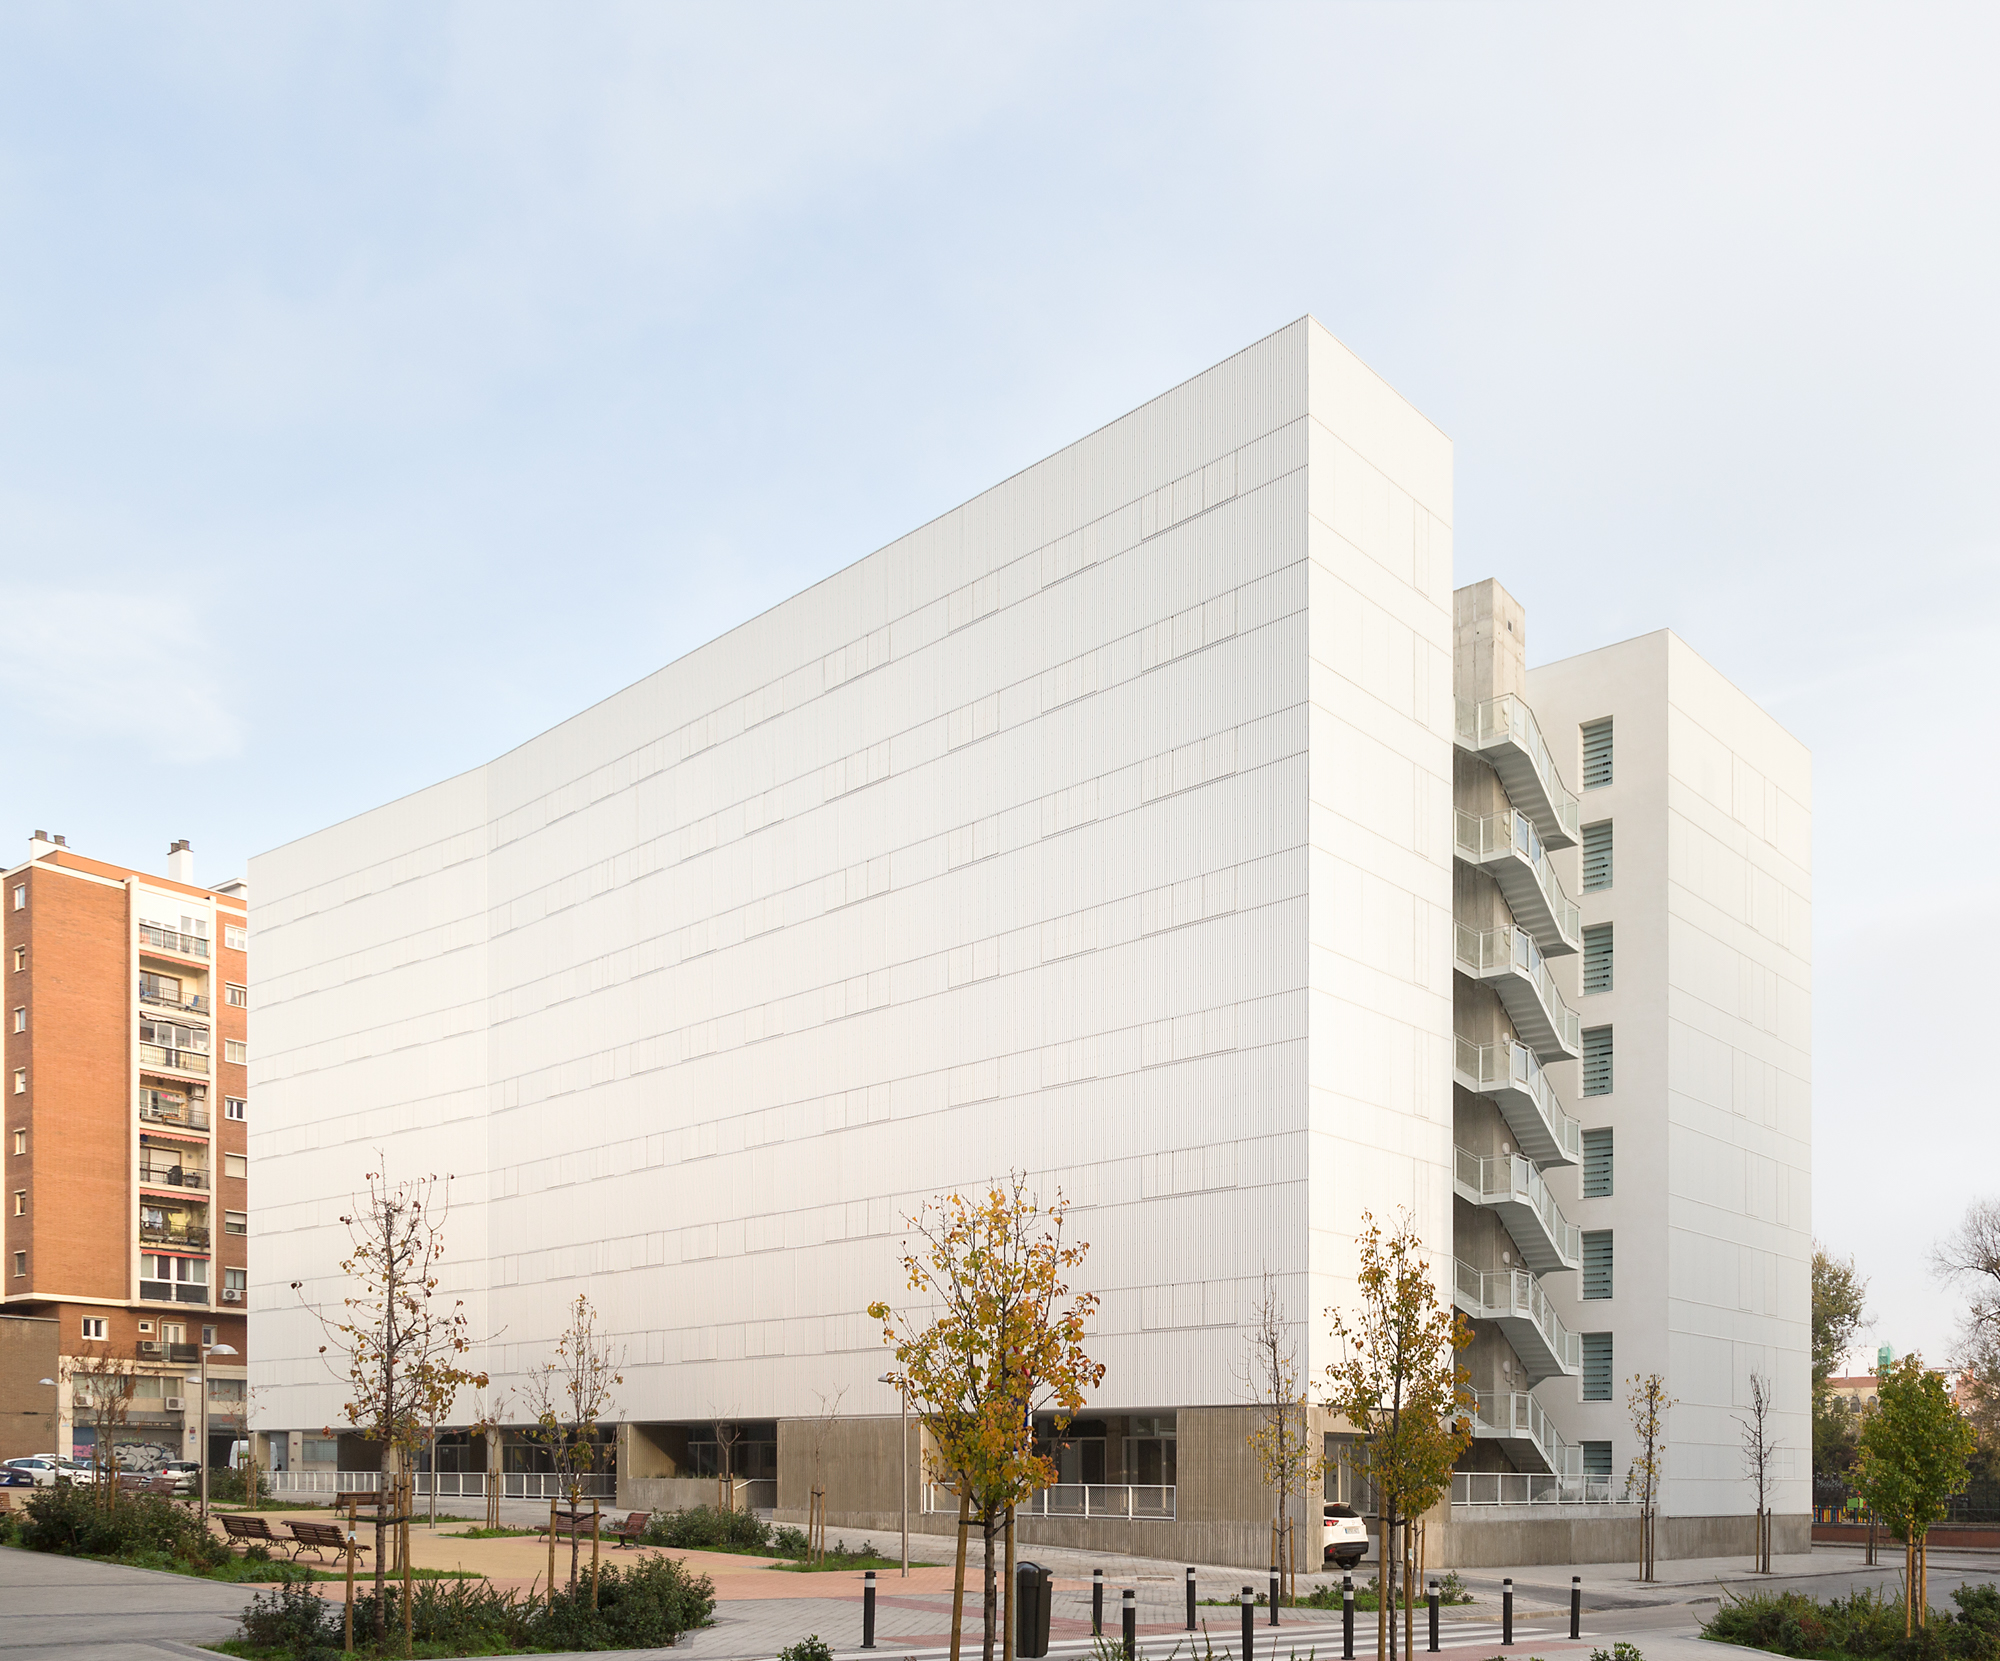 Adelfas 98 is the first collective housing project in Madrid which obtains a VERY GOOD in BREEAM rating